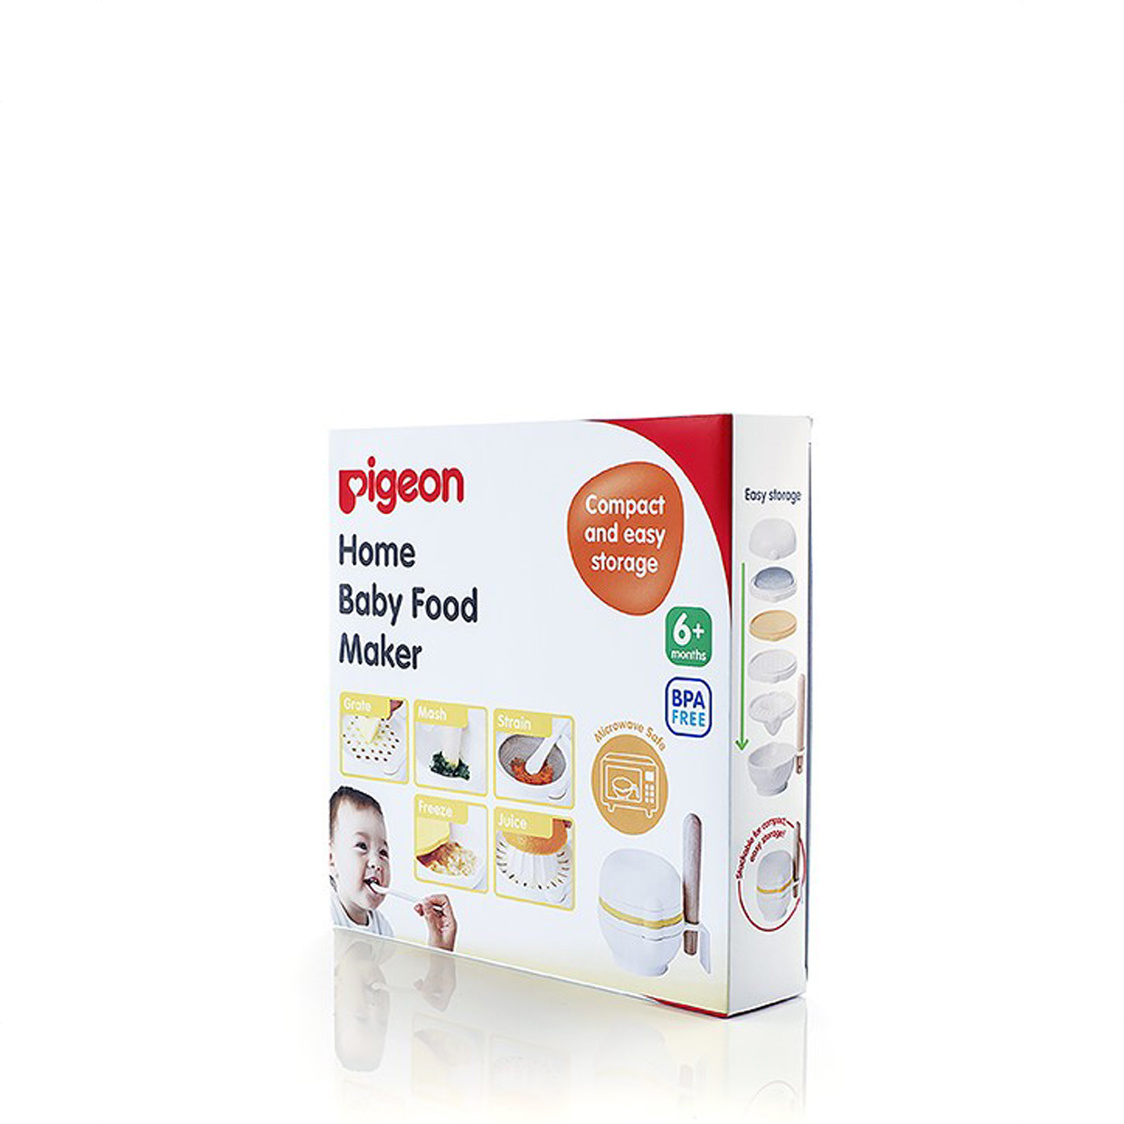 Home Baby Food Maker